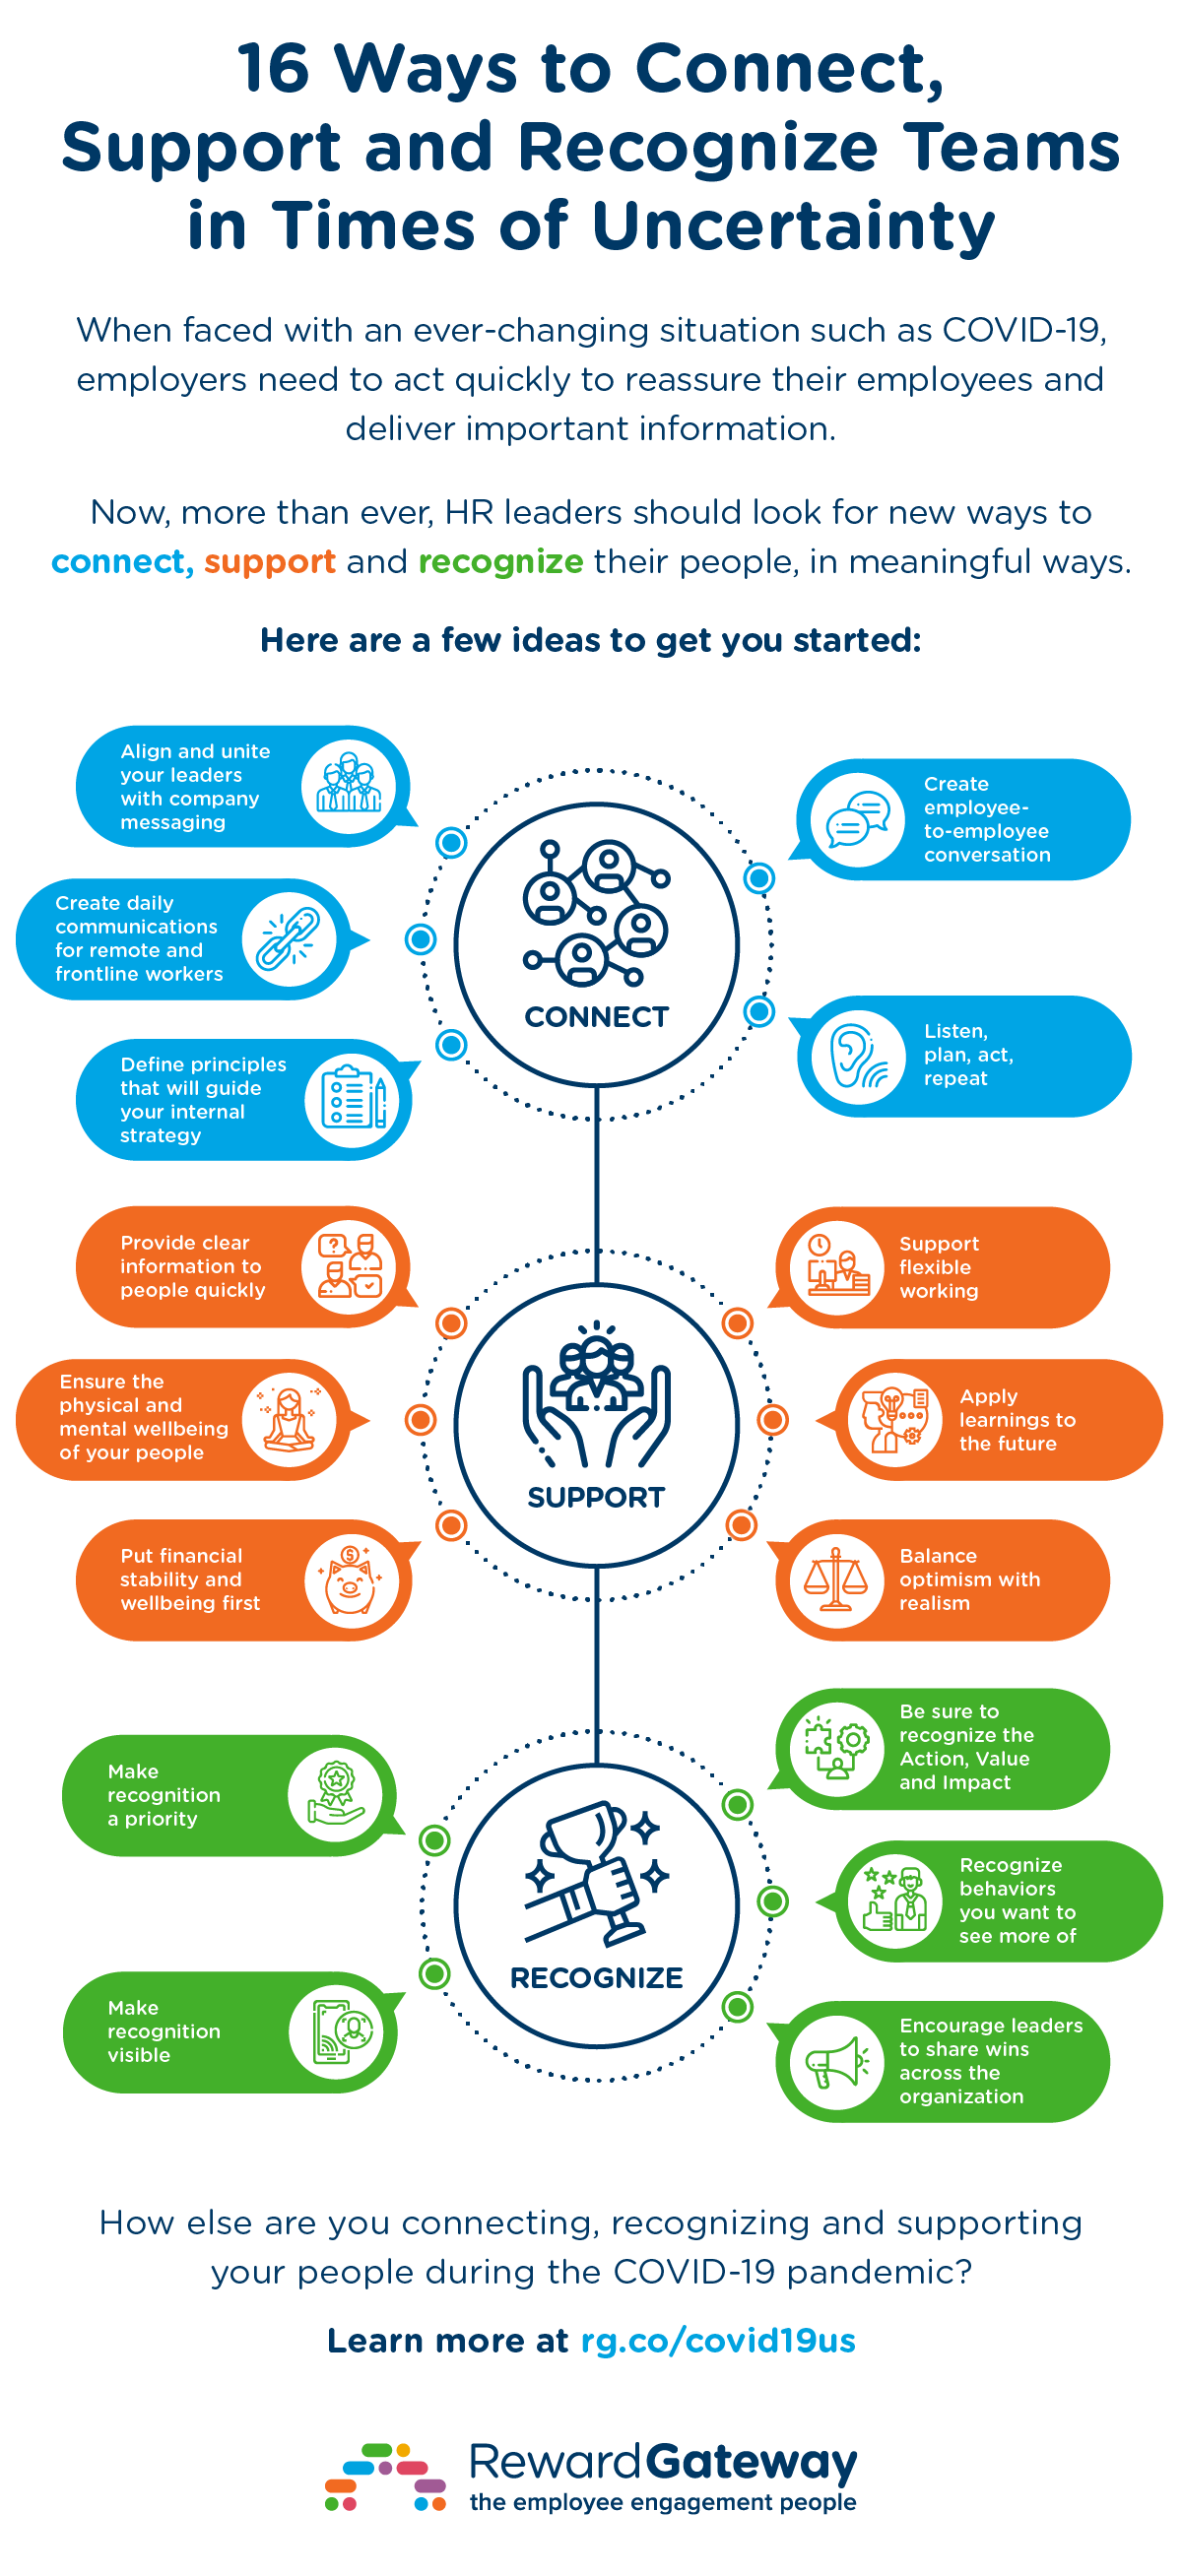 16-ways-to-connect-support-recognize-teams-infographic-us